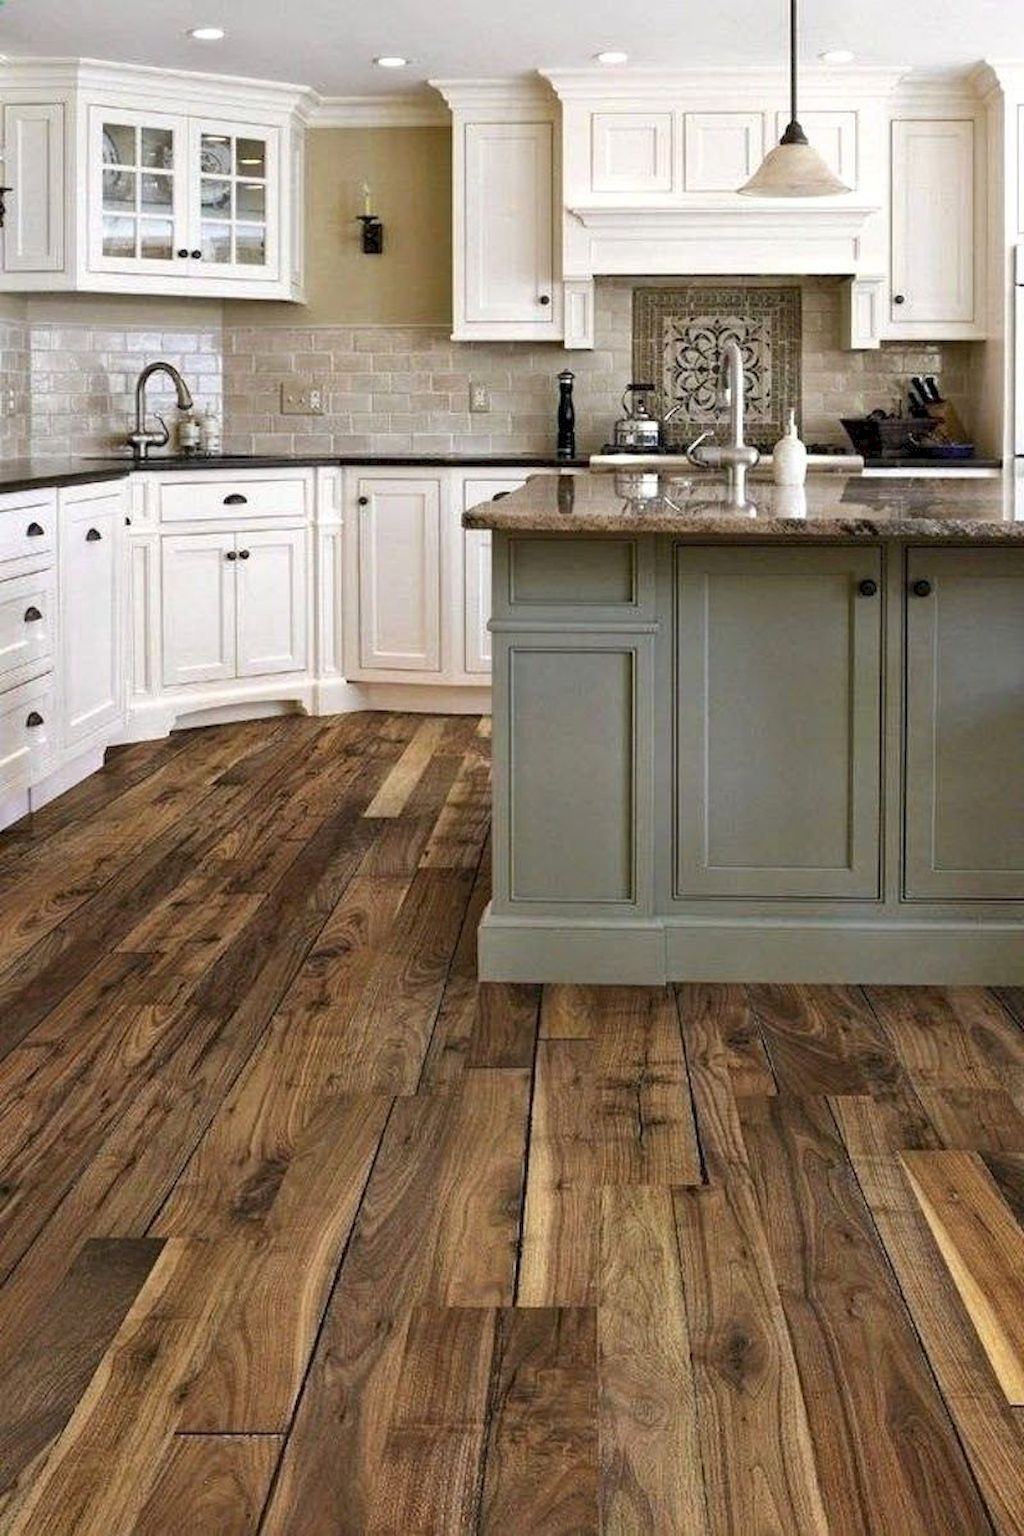 hardwood floors in kitchen pros and cons of pin by courtney cousins on home pinterest modern farmhouse in vinyl plank wood look floor versus engineered hardwood flooring hardwood floors anyone have pros or cons i am sorta partial to good ole hard wood floors